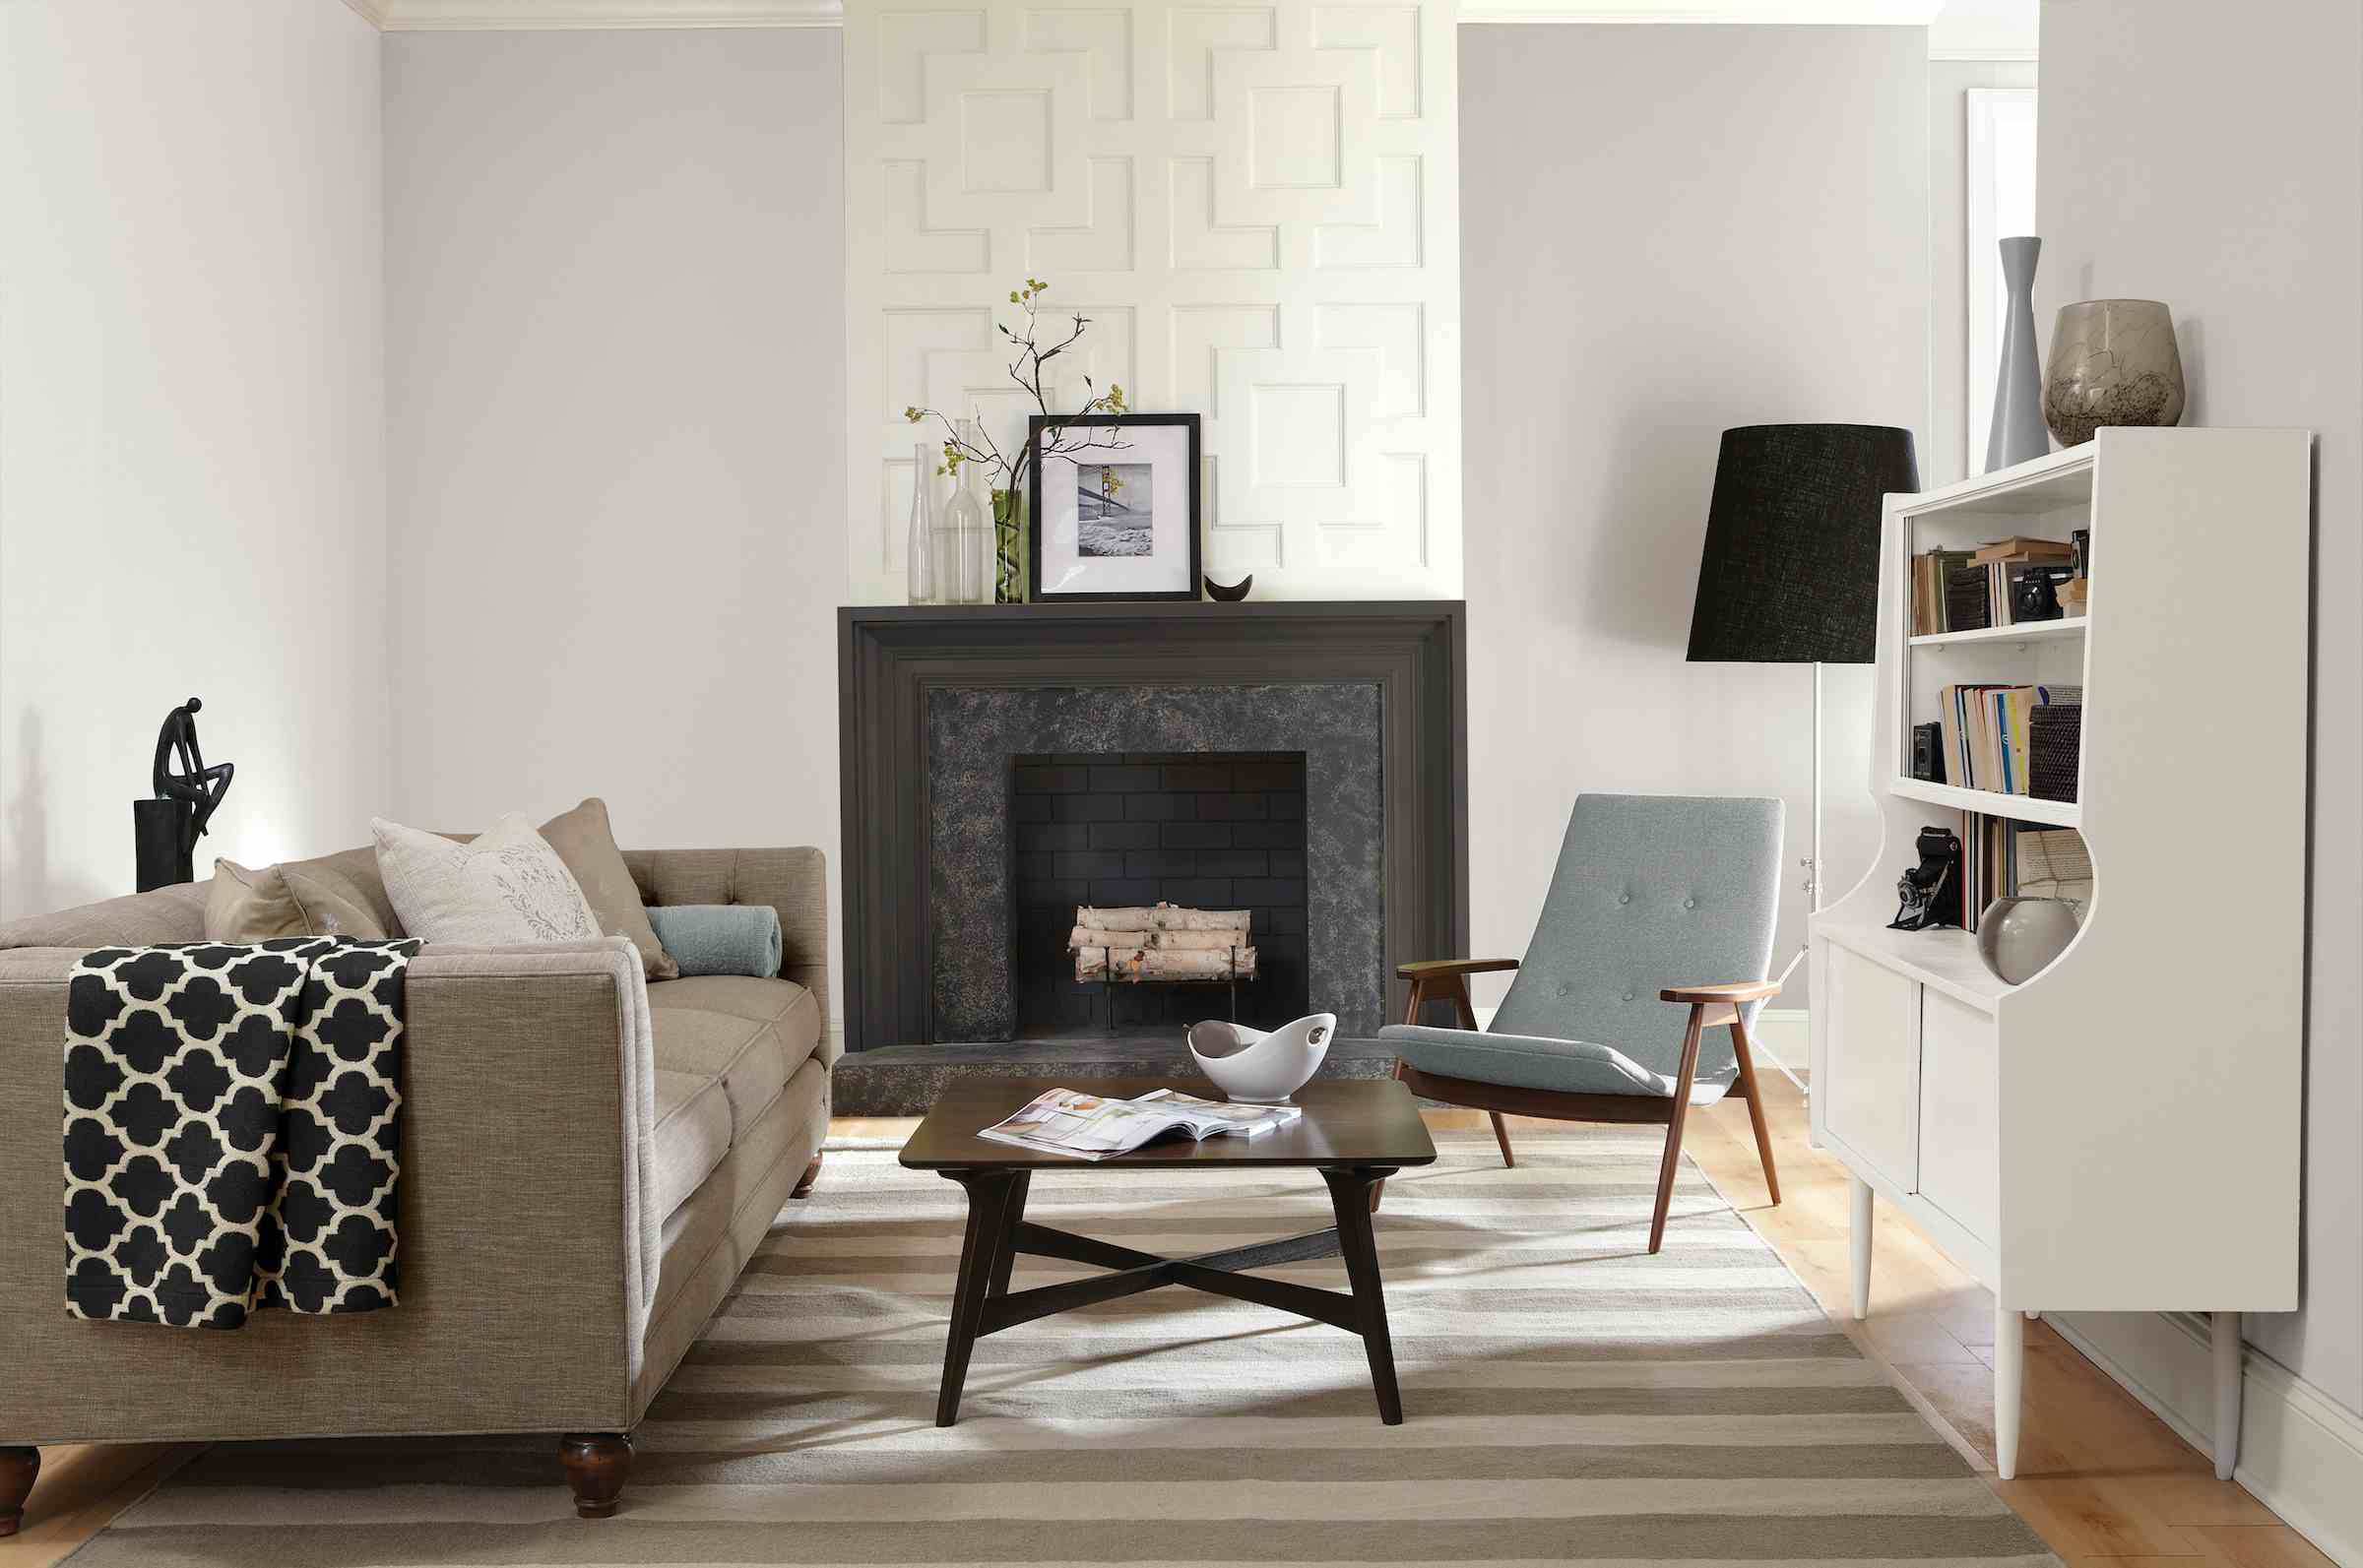 best living room colors neutral navy blue furniture top 9 paint for a new home crushed ice sw 7647 on display in